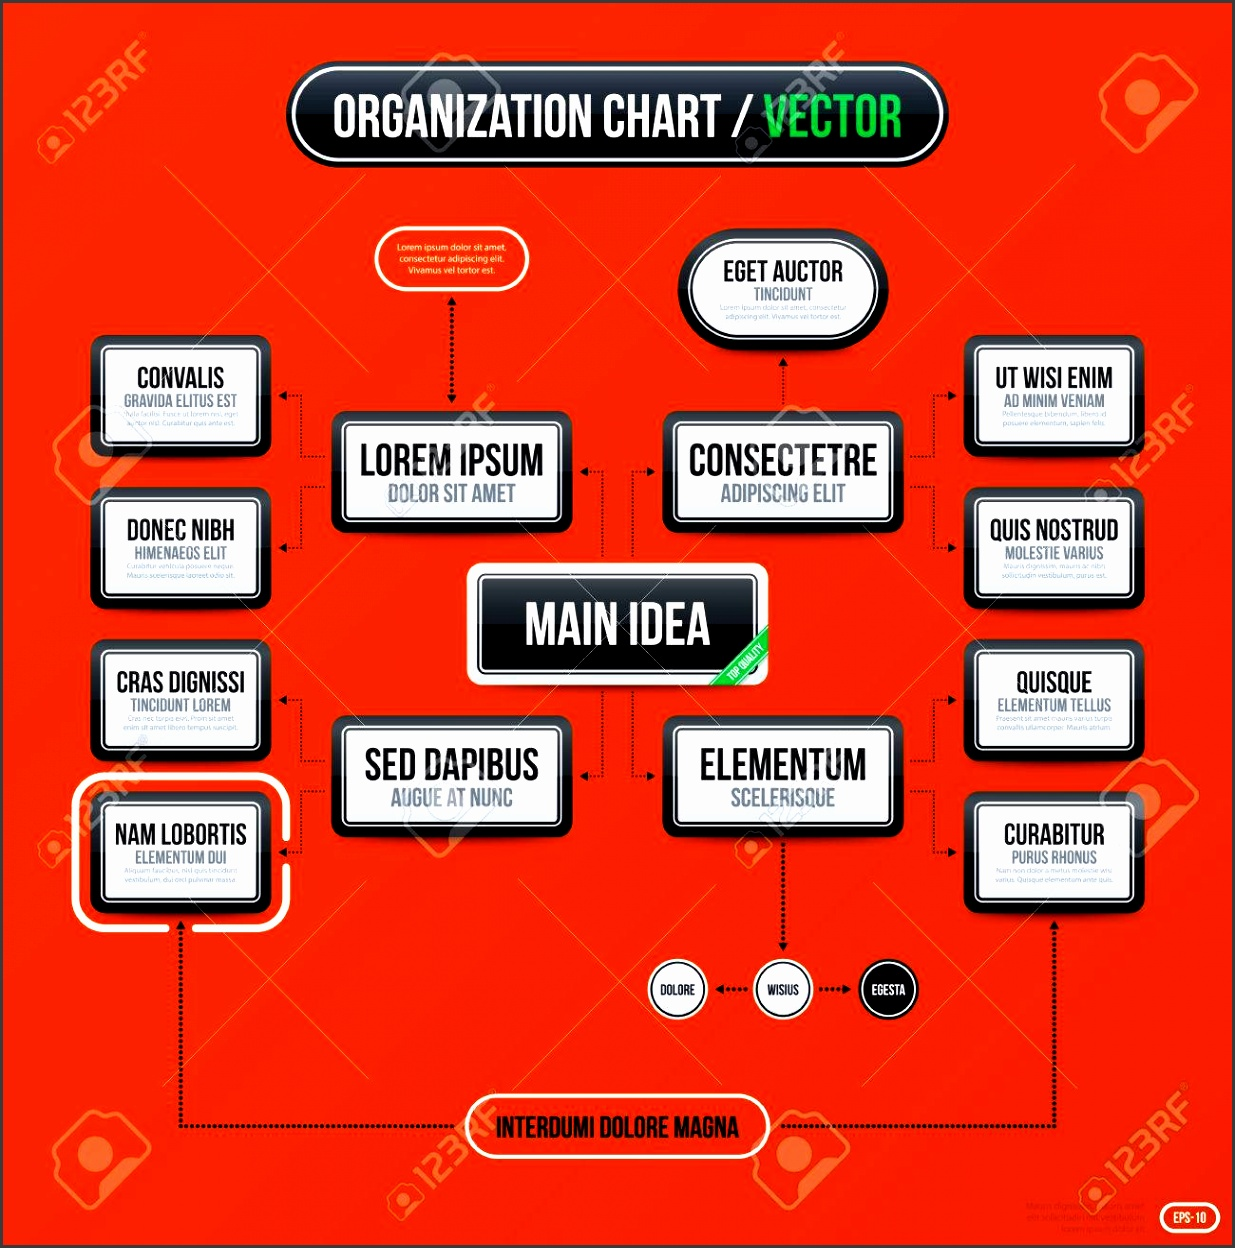 Corporate business organization chart template on bright orange background Useful for presentations and advertising